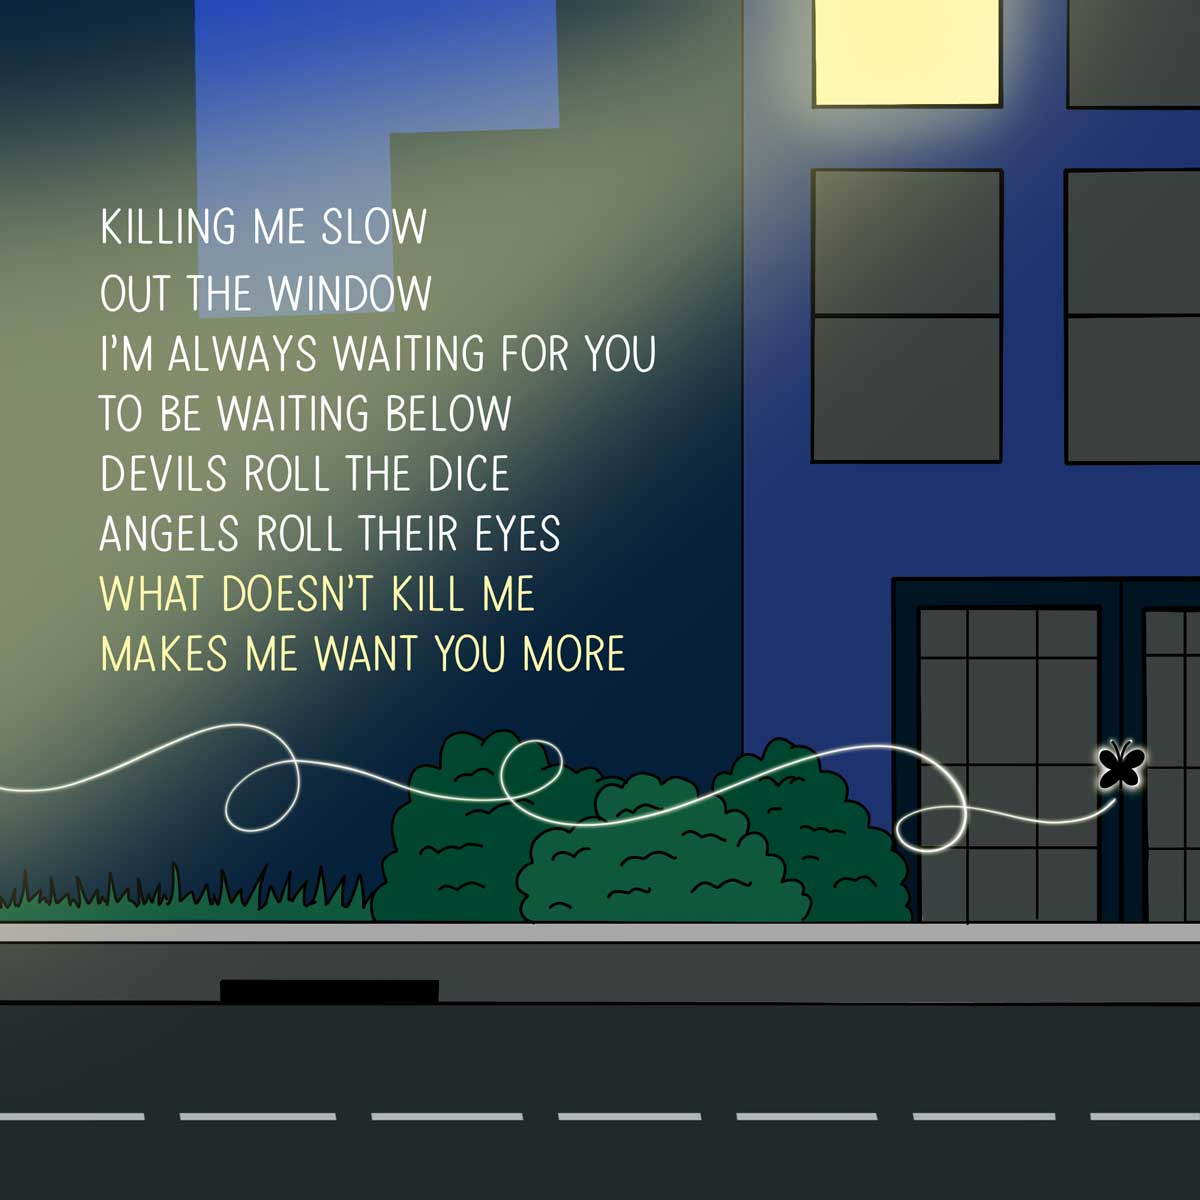 What doesnt kill me makes me want you more taylor swift song quote.